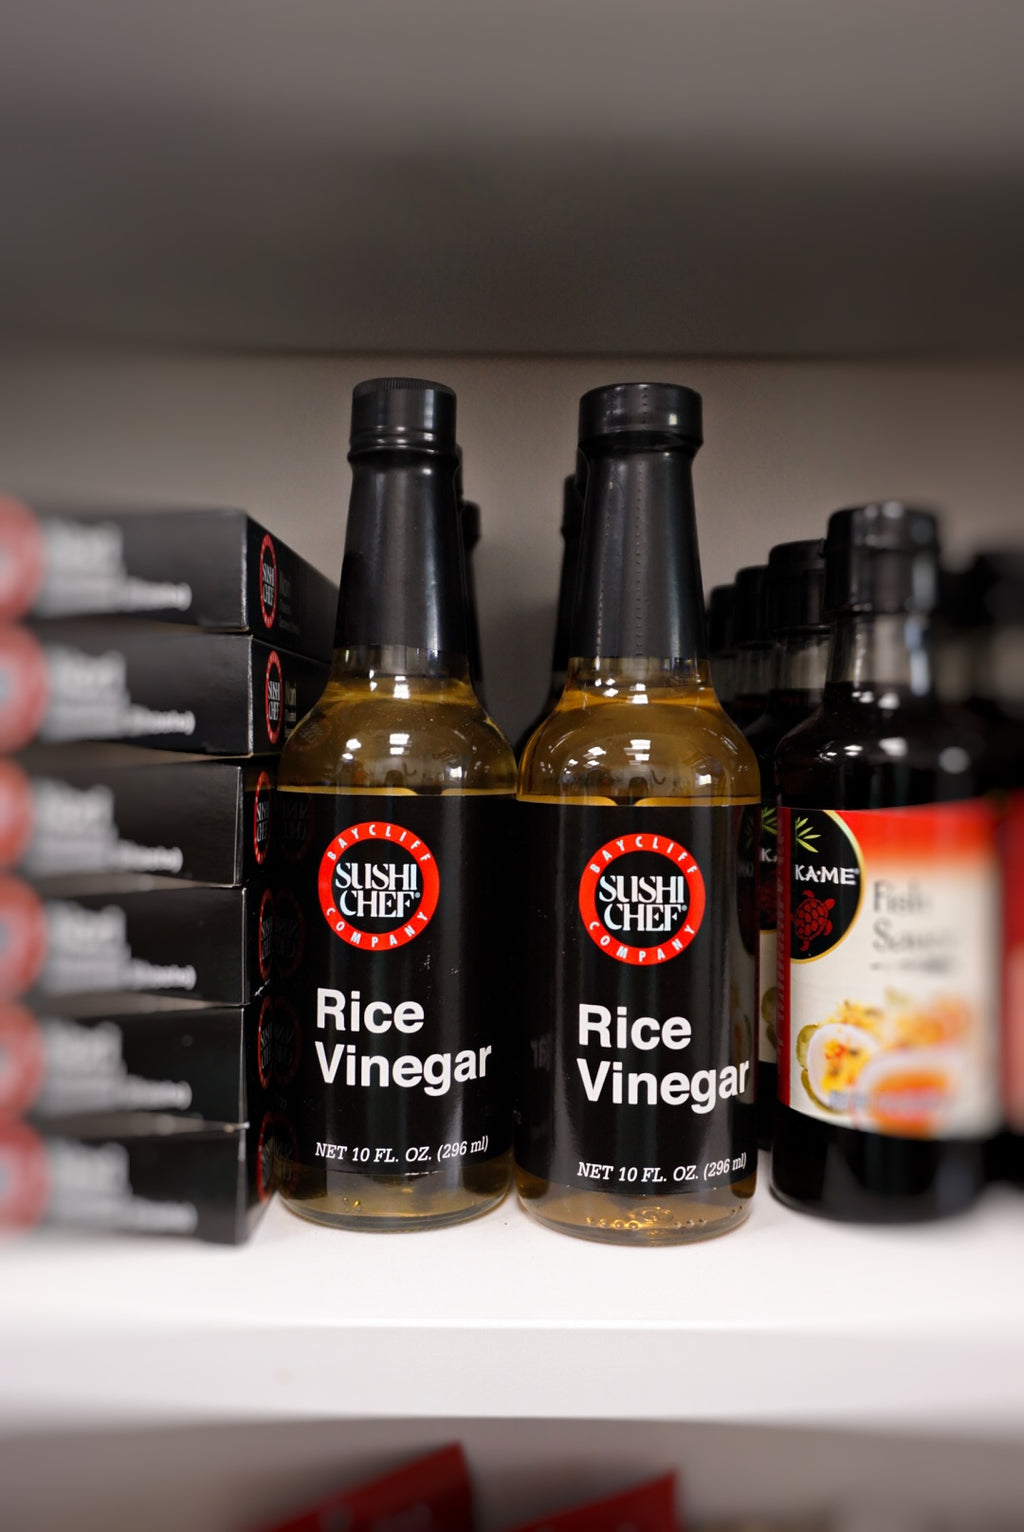 Sushi Chef Rice Vinegar - Larchmont